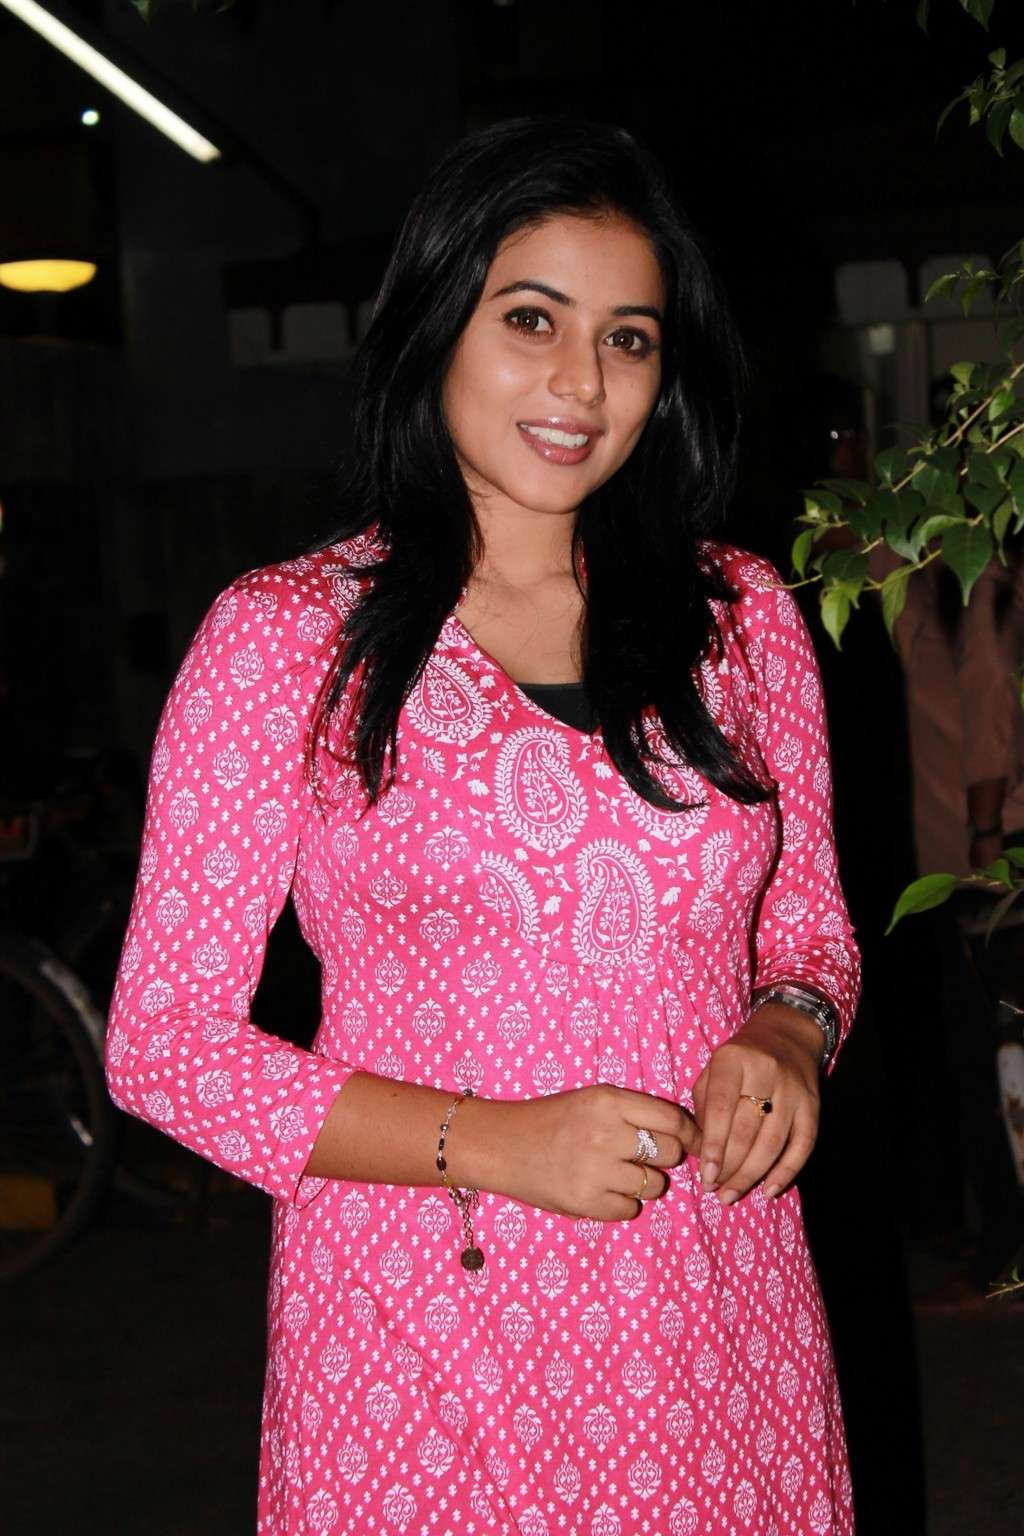 Poorna Bright in Pink Top Poorna24